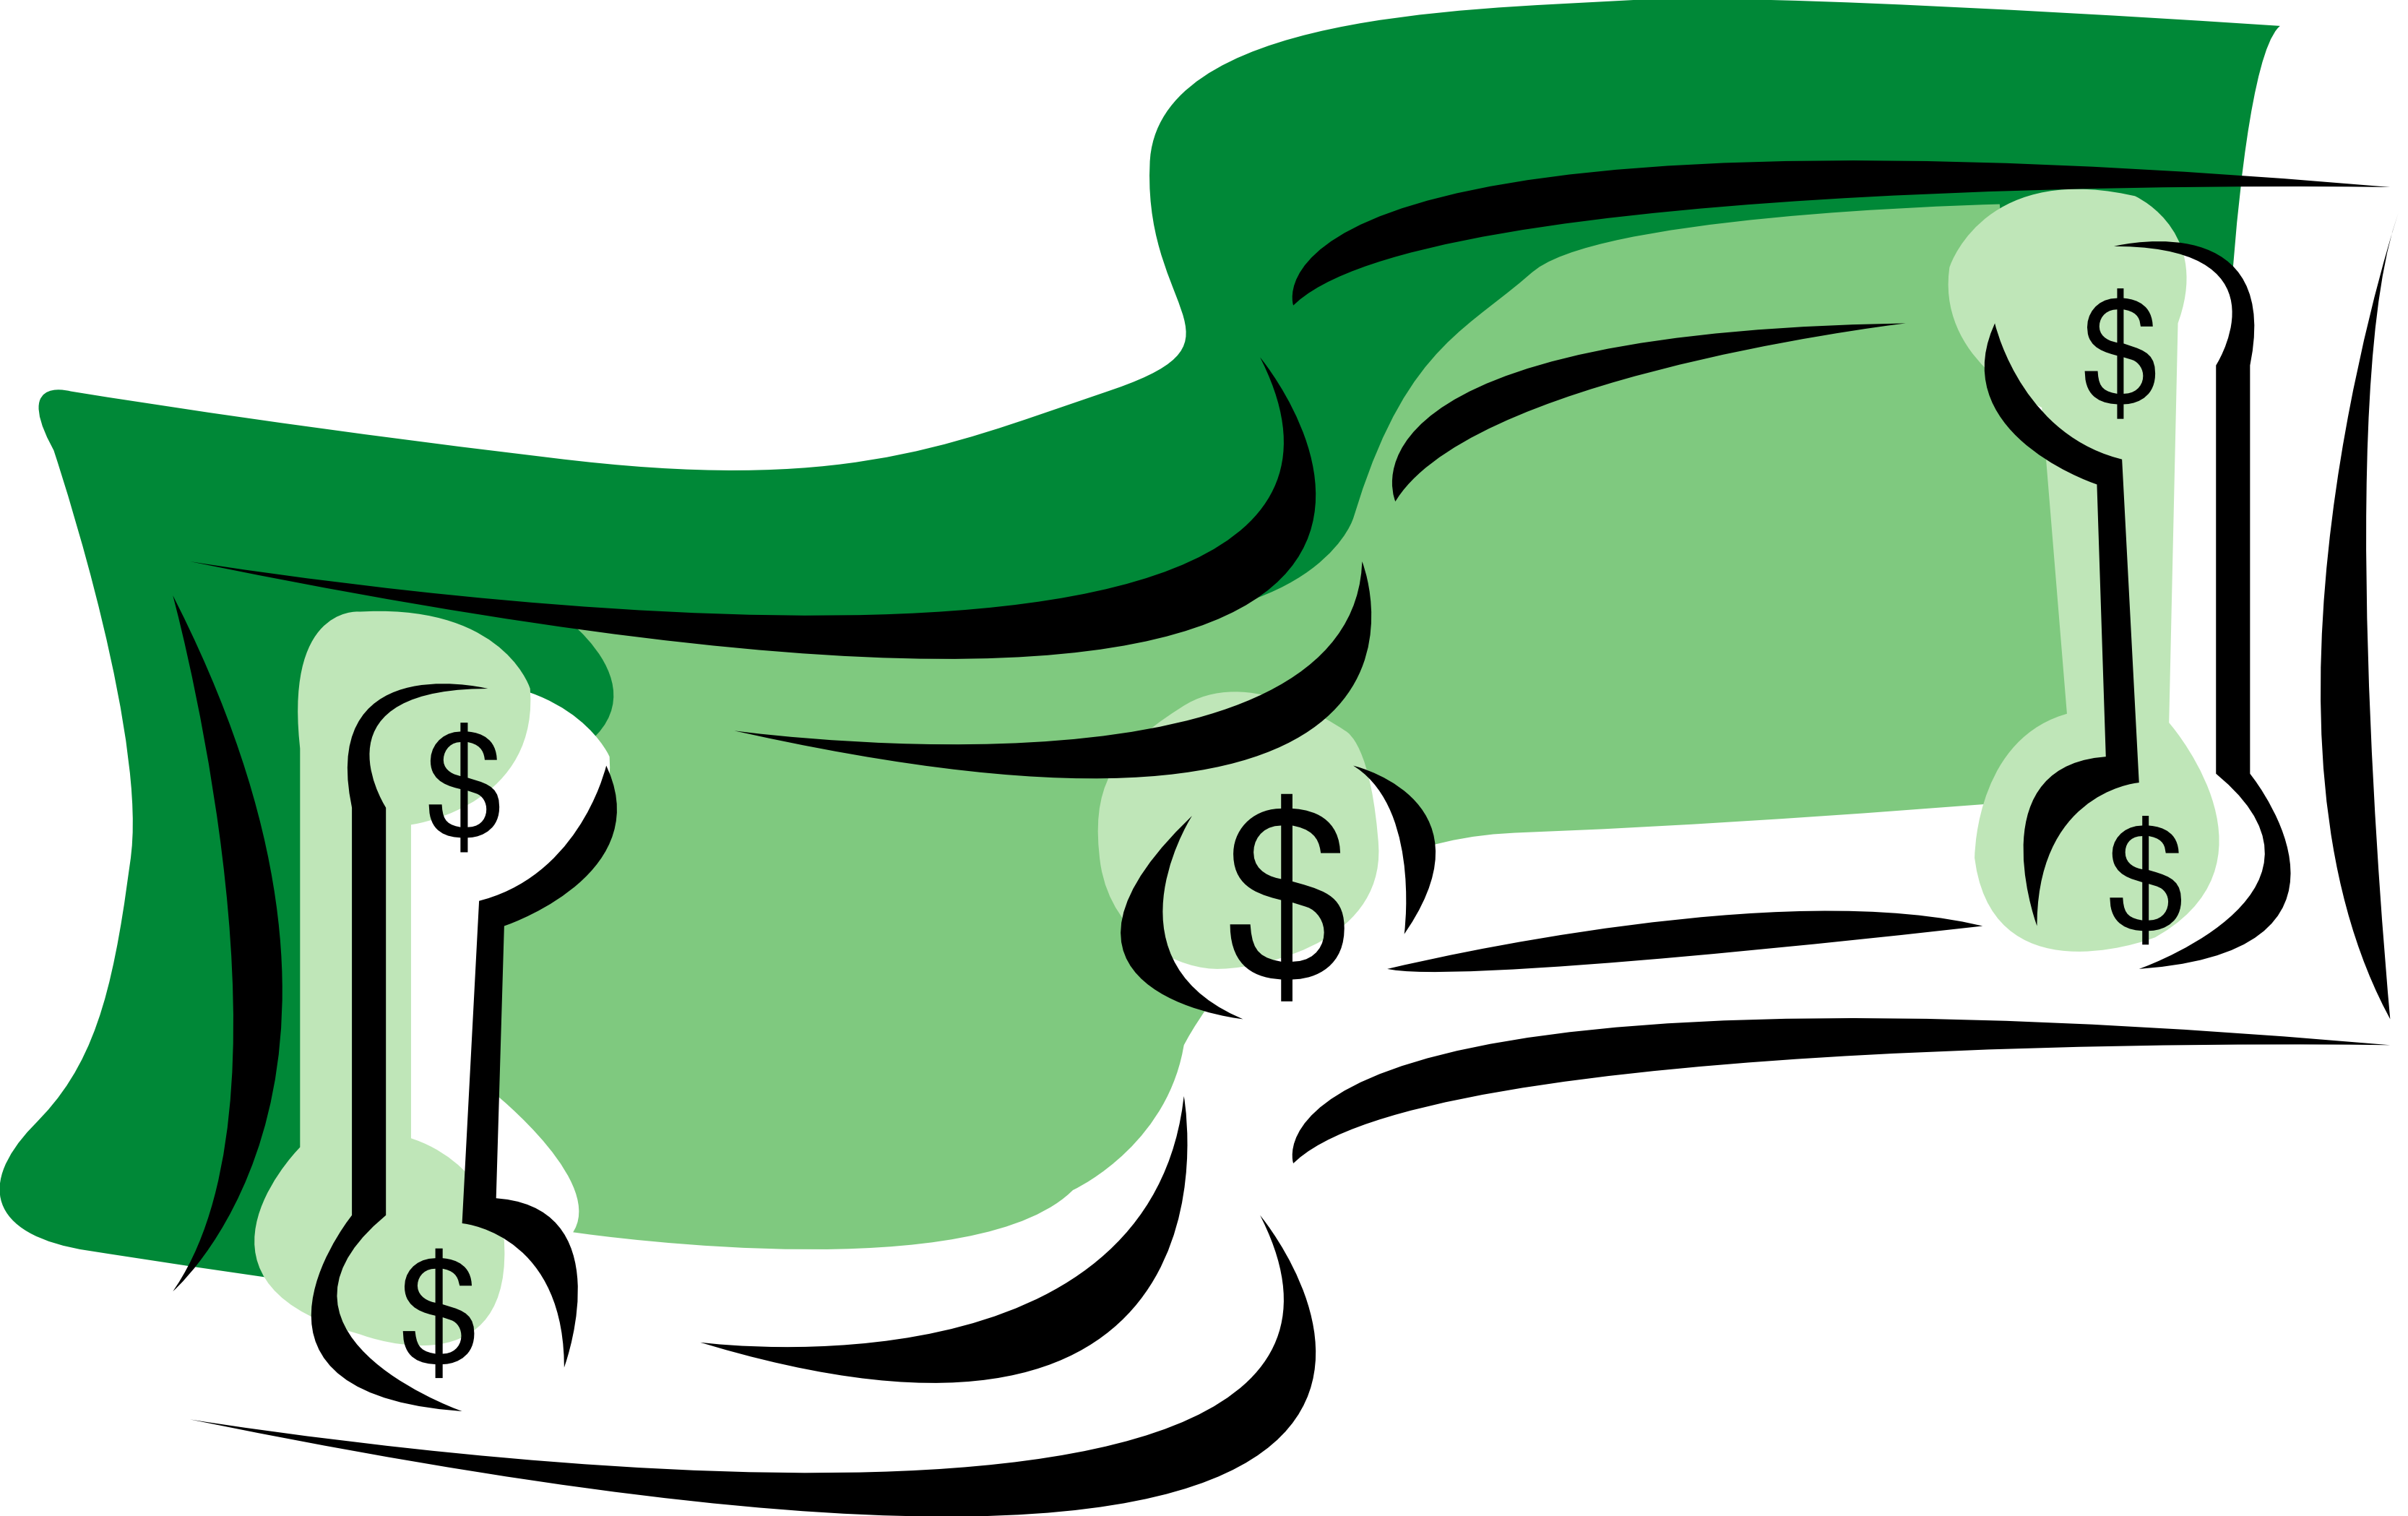 Money clipart mountain. Million dollar bill clip